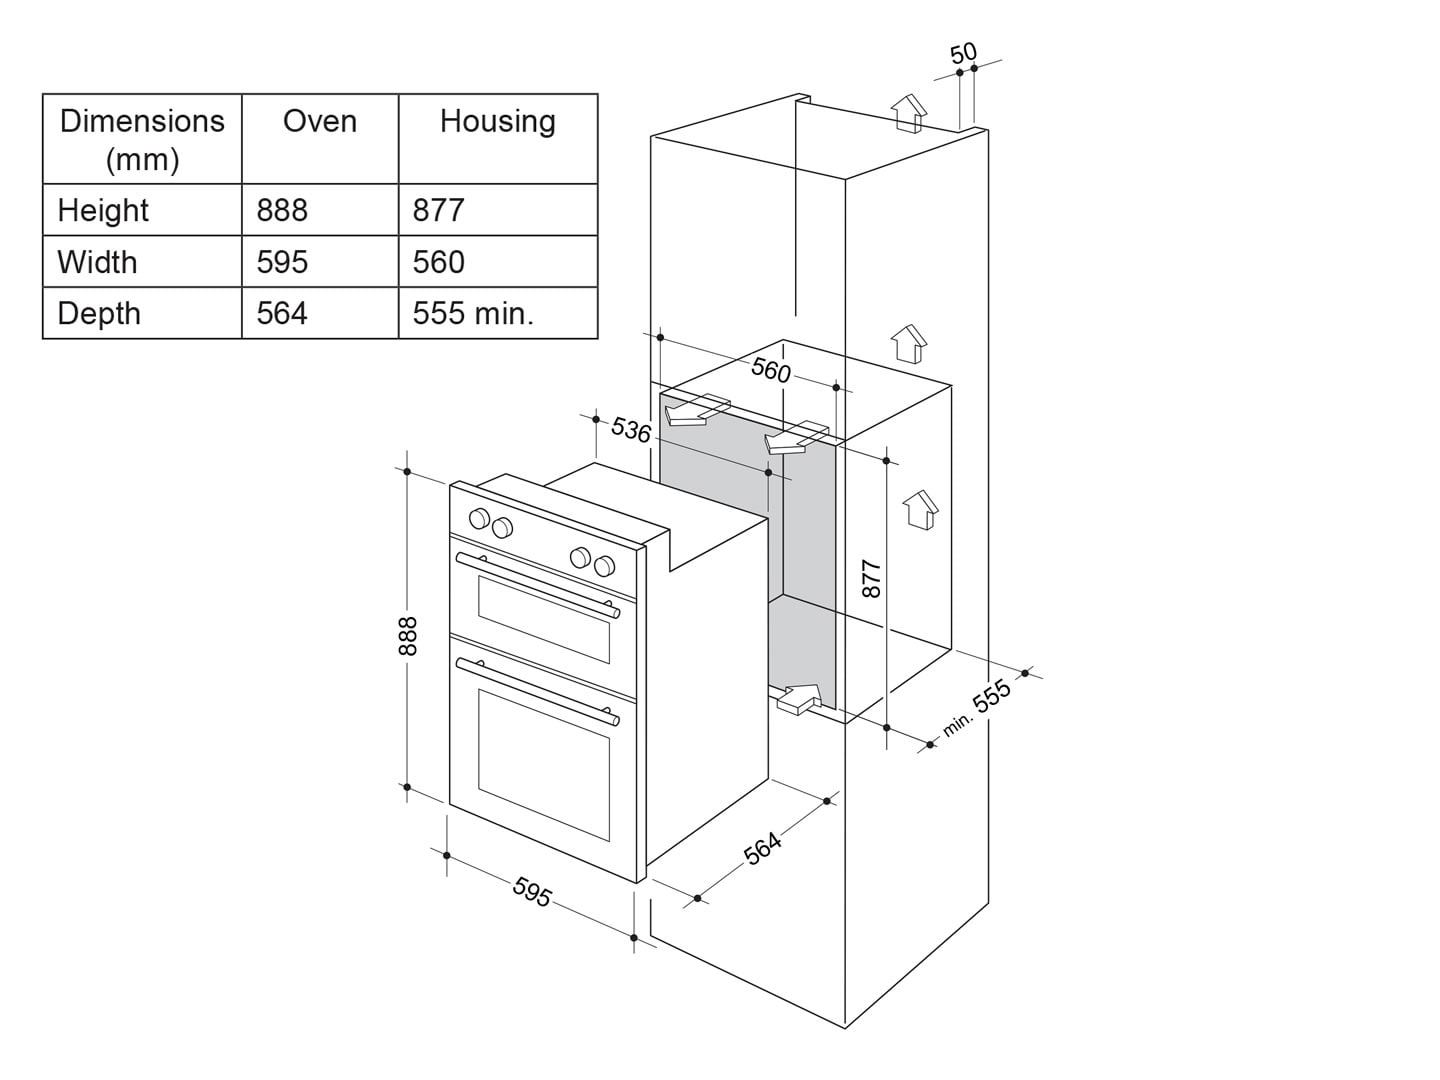 hight resolution of delonghi 60cm multi function double wall oven del6038d installation diagram